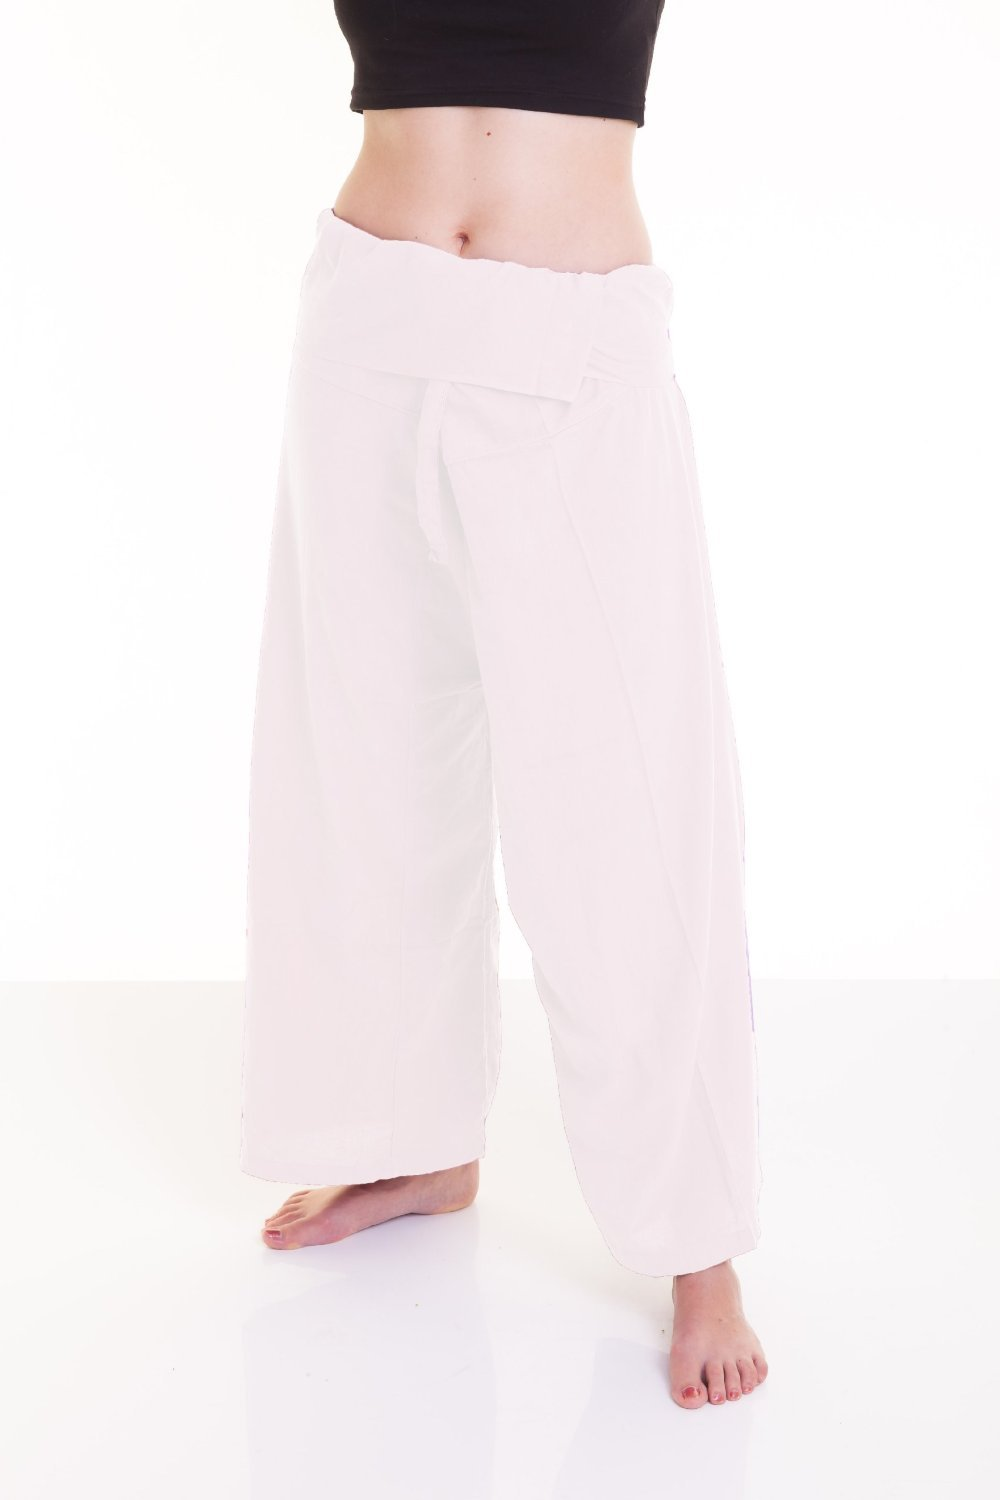 Night Bazaar:Cool Thai Fisherman Pants Yoga Trousers FREE SIZE Plus Size Cotton Rayon bird